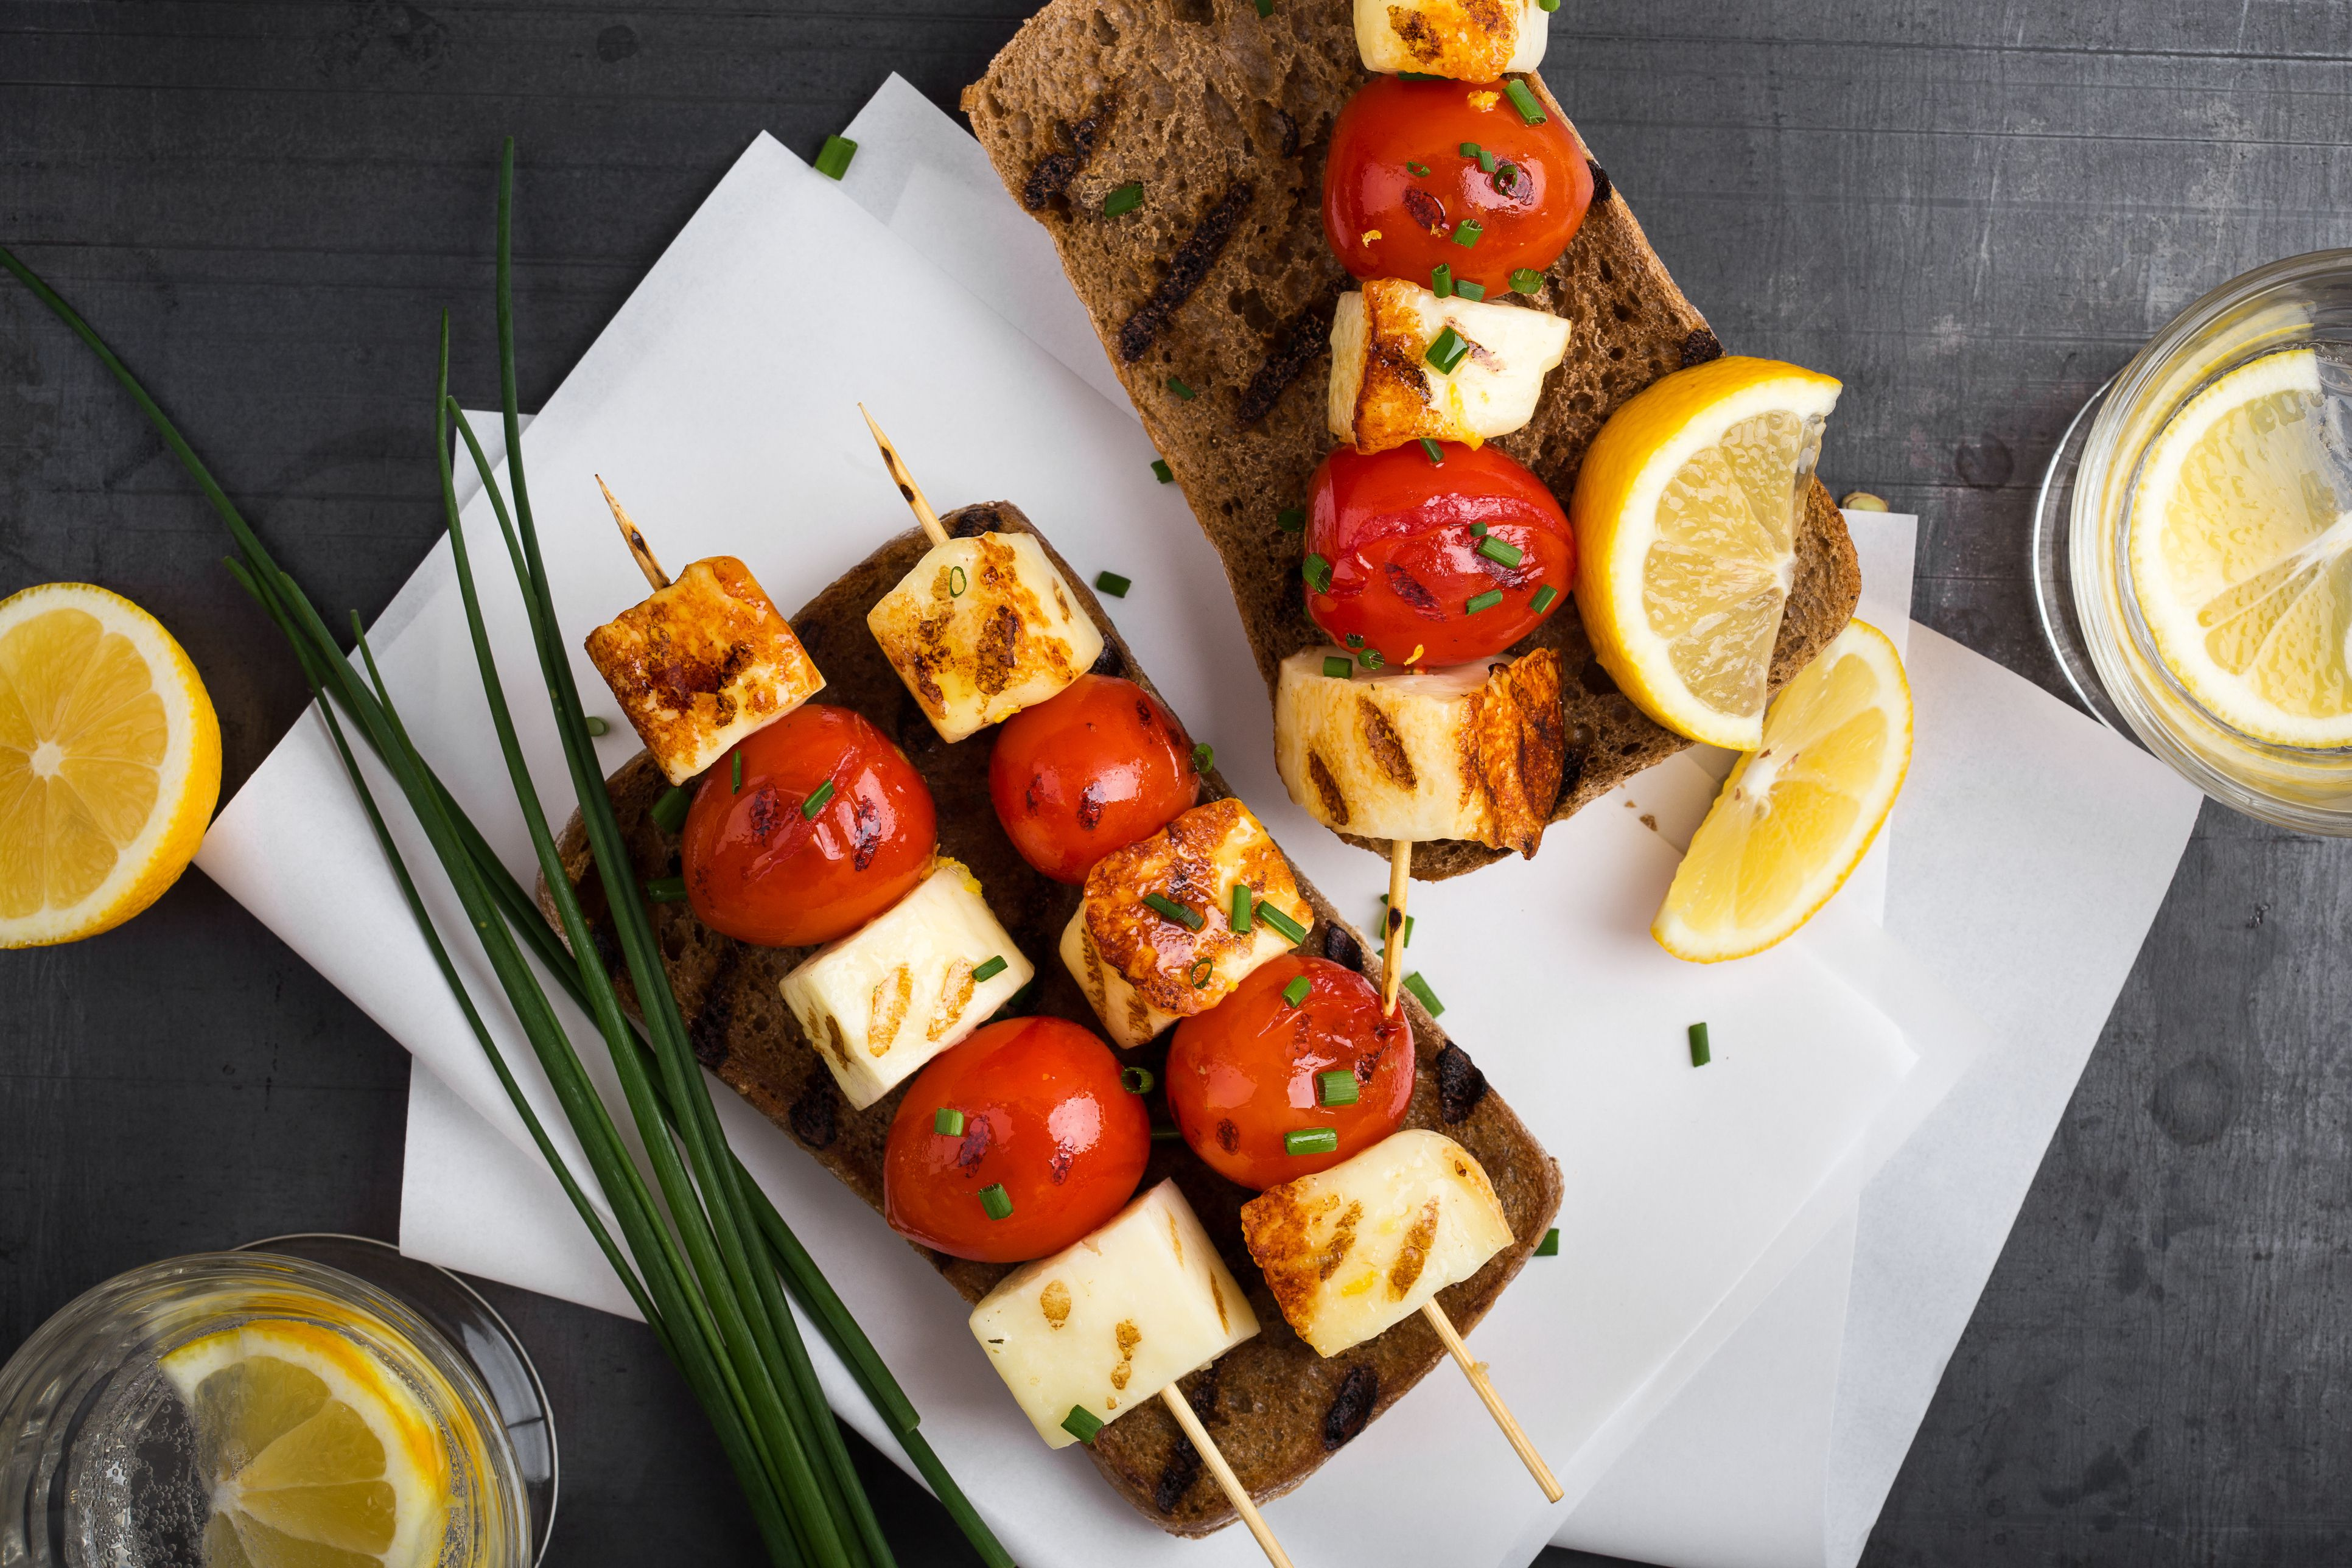 Grilled haloumi skewer sandwich with tomato